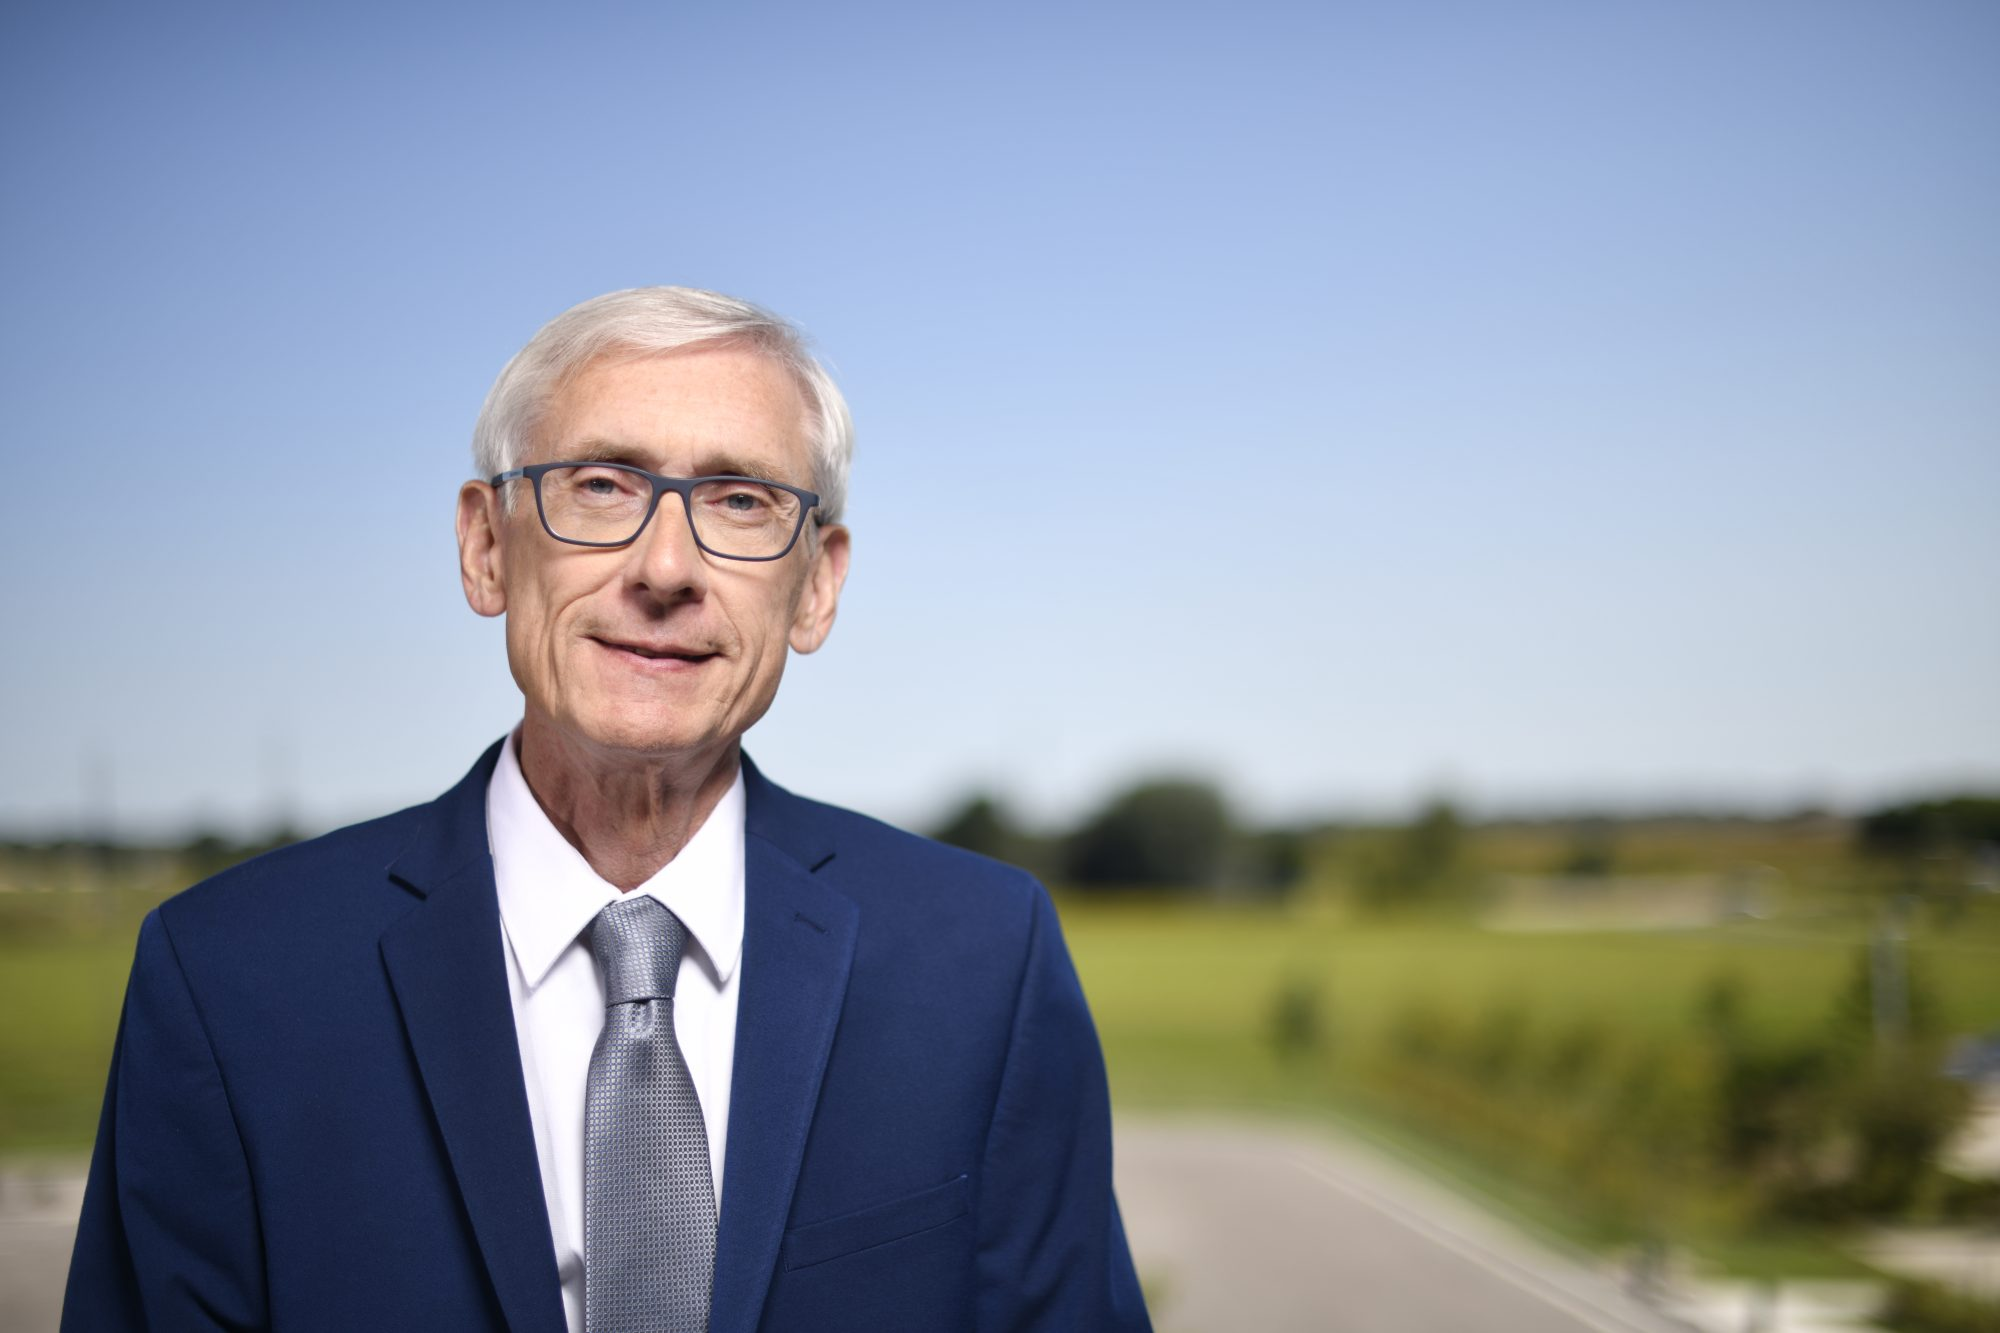 Gov. Evers Announces $1.5 Million in Grants for Wisconsin's Coastal Communities